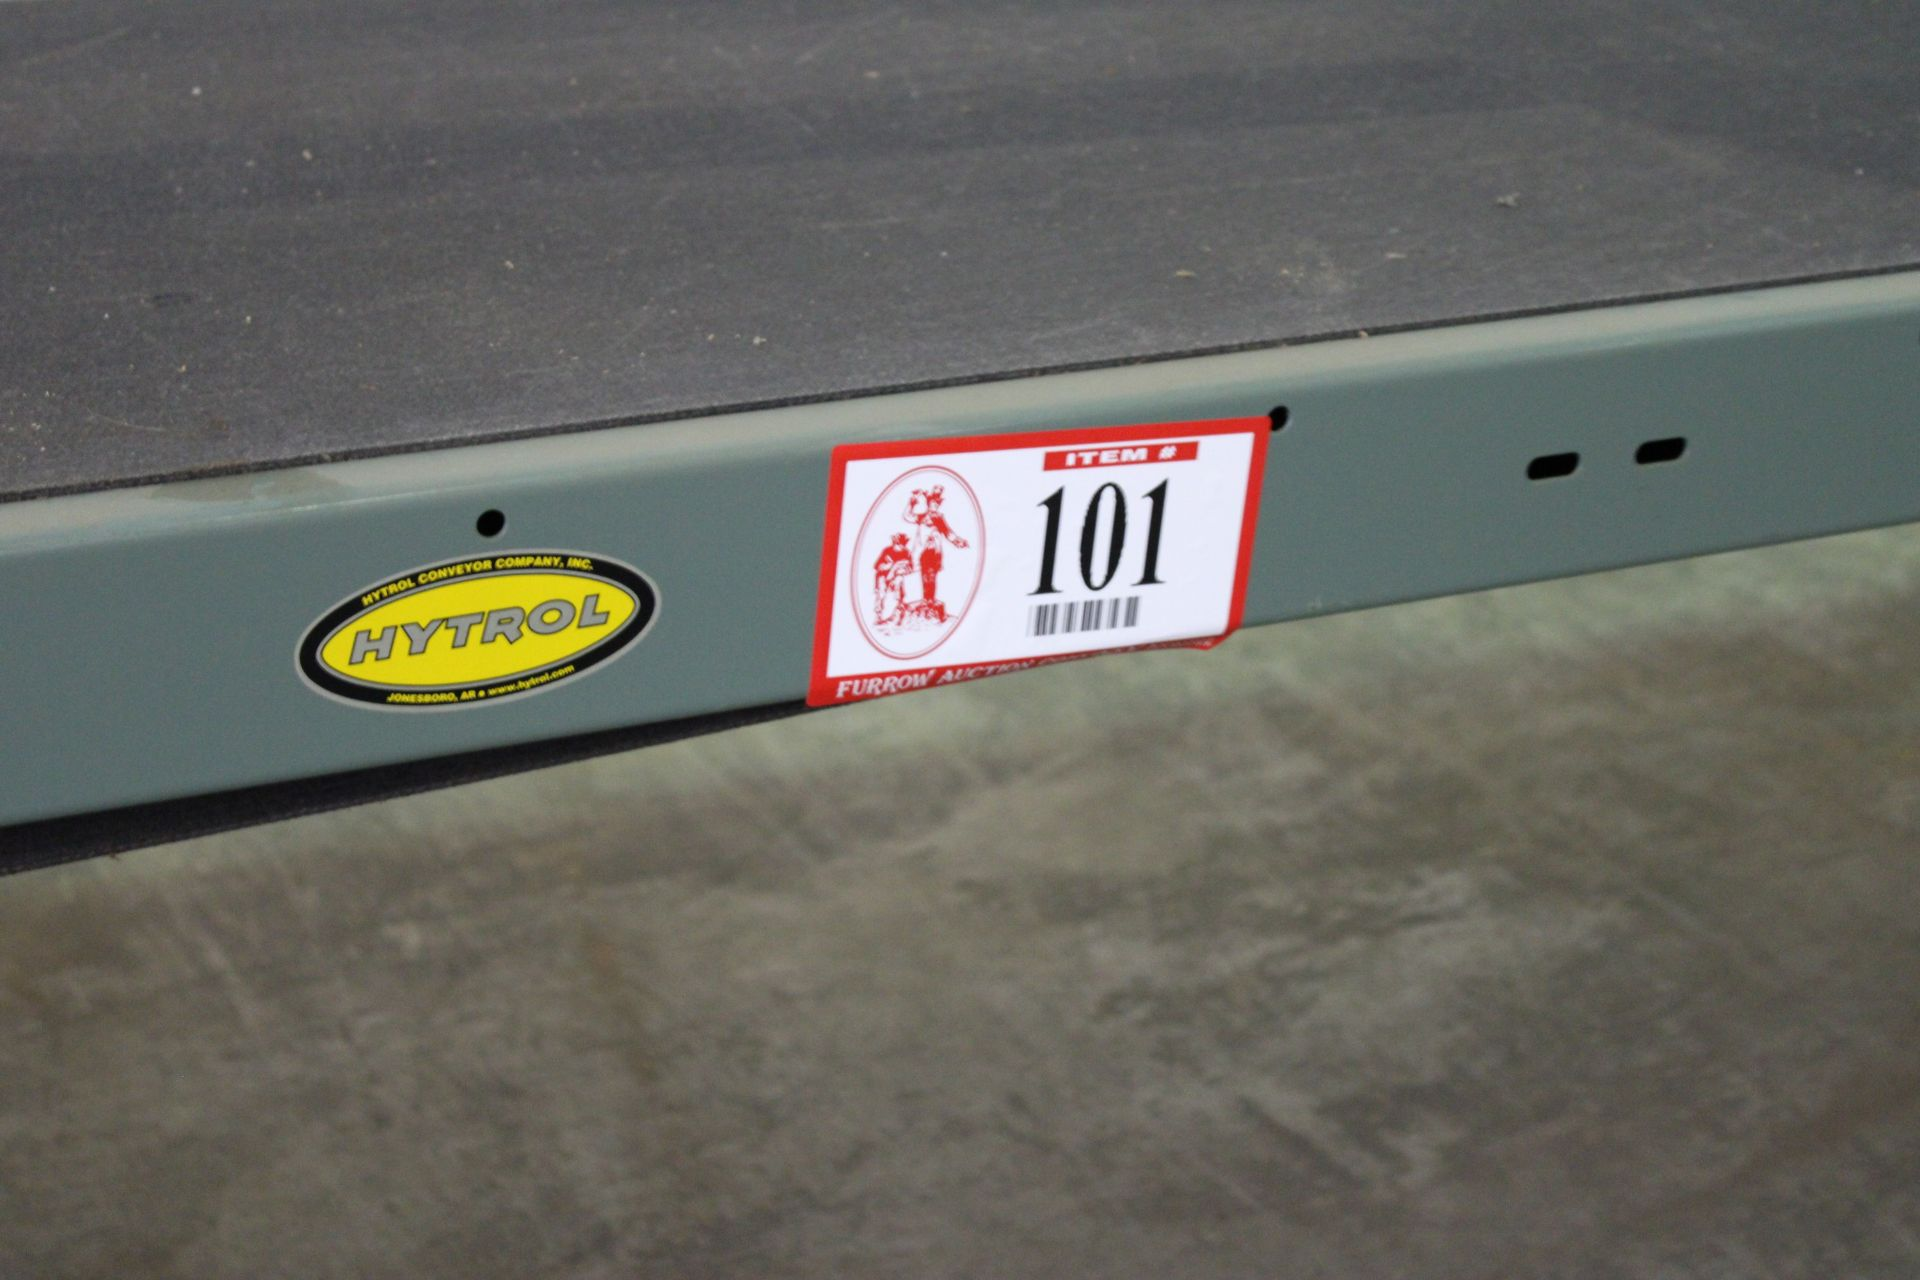 Hytrol Model TA 37ft Power Conveyor, 230 v 3 Phase, New, Used less than 100 hours, Variable speed to - Image 2 of 5